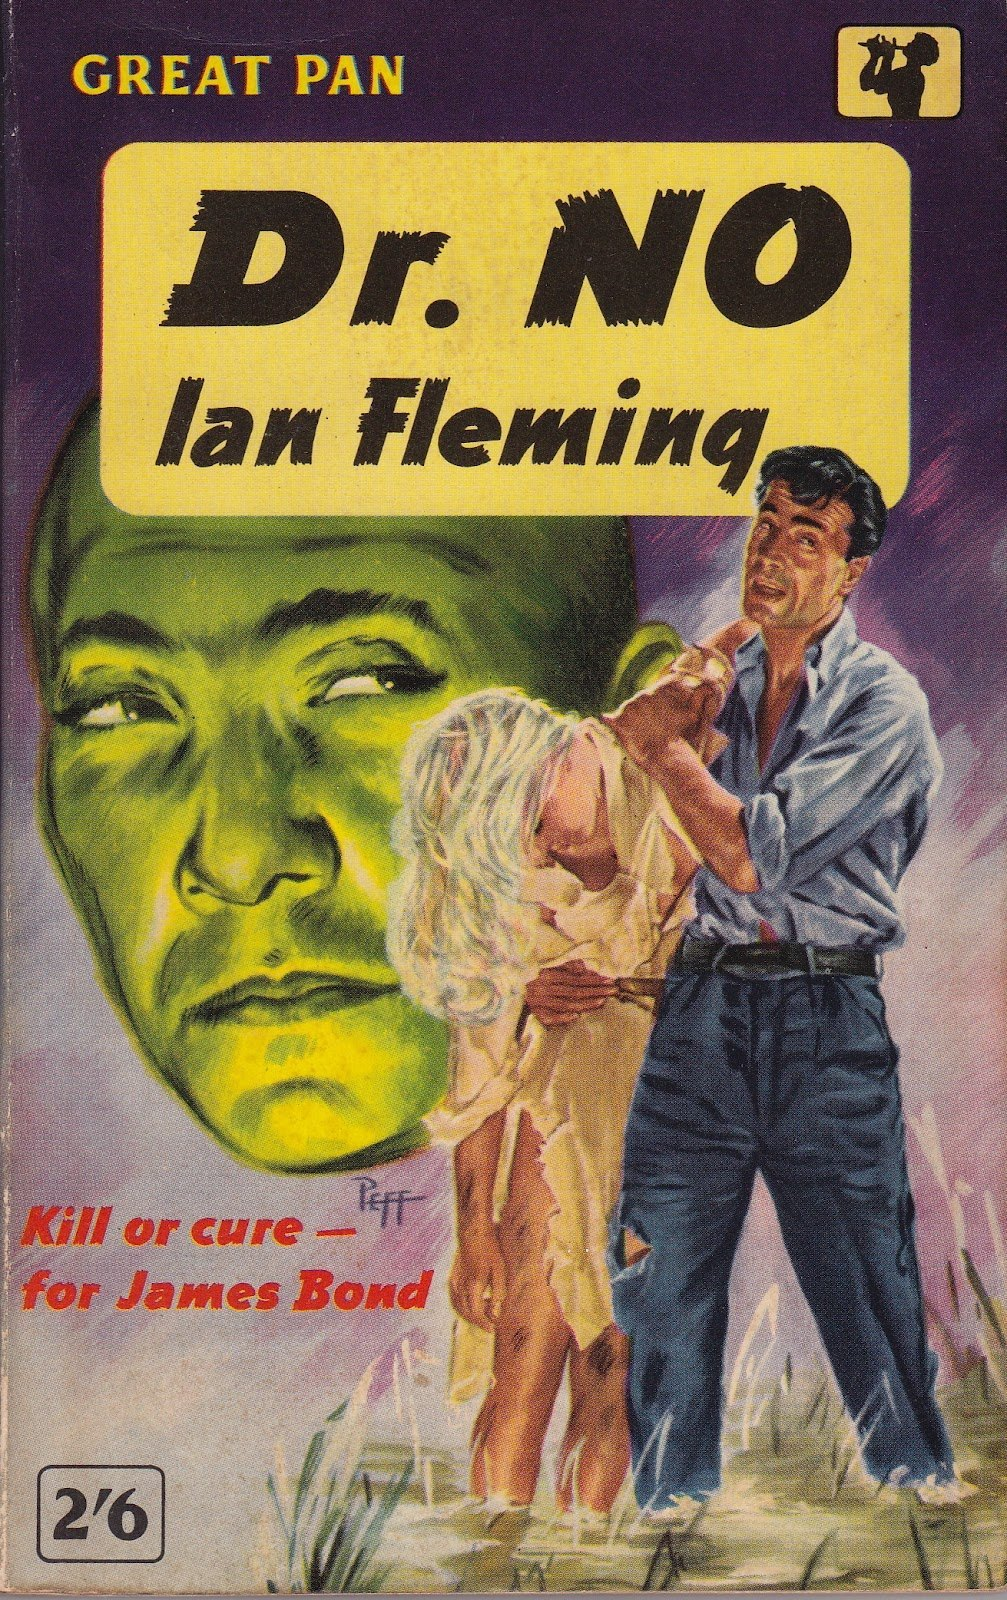 Dr No paperback published by Pan in 1962.